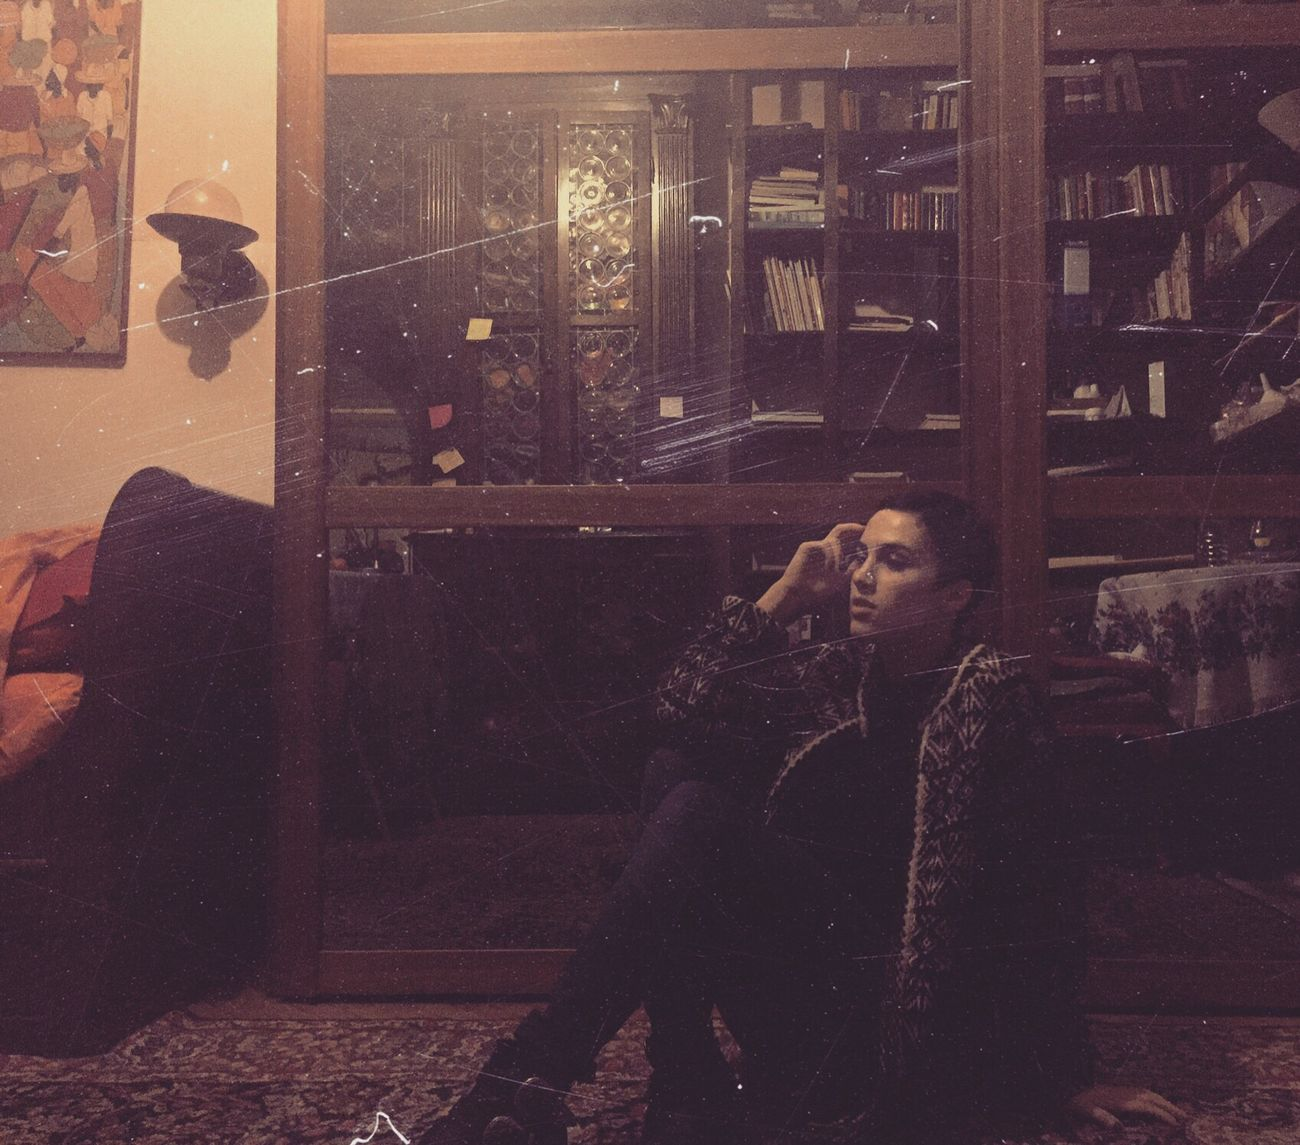 One Person Lifestyles Home Interior Women Relaxing EyeEm Taking Photos Italiangirl Pictureoftheday Girl Pixiecut Sixties